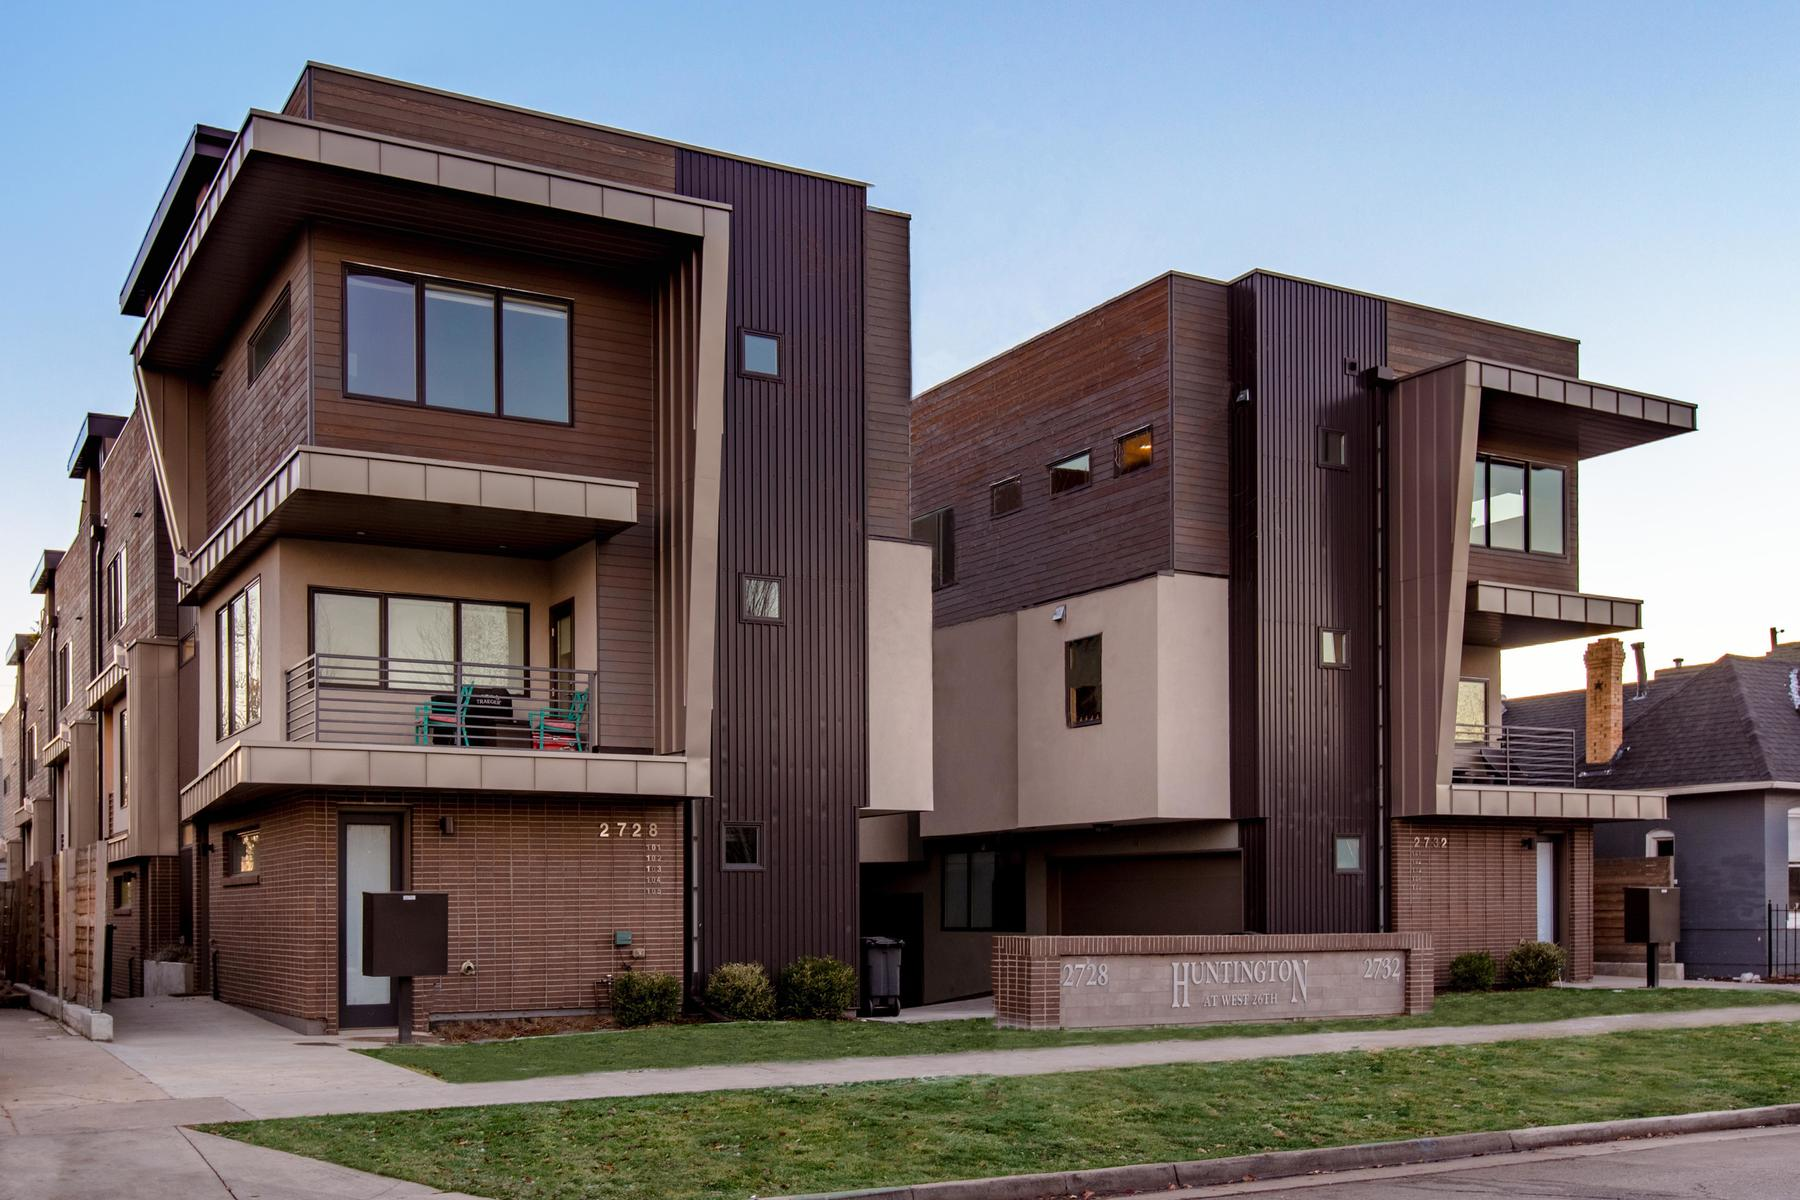 Property for Active at This is the upscale Jefferson Park townhome you've been awaiting 2728 W 26th Ave #102 Denver, Colorado 80211 United States